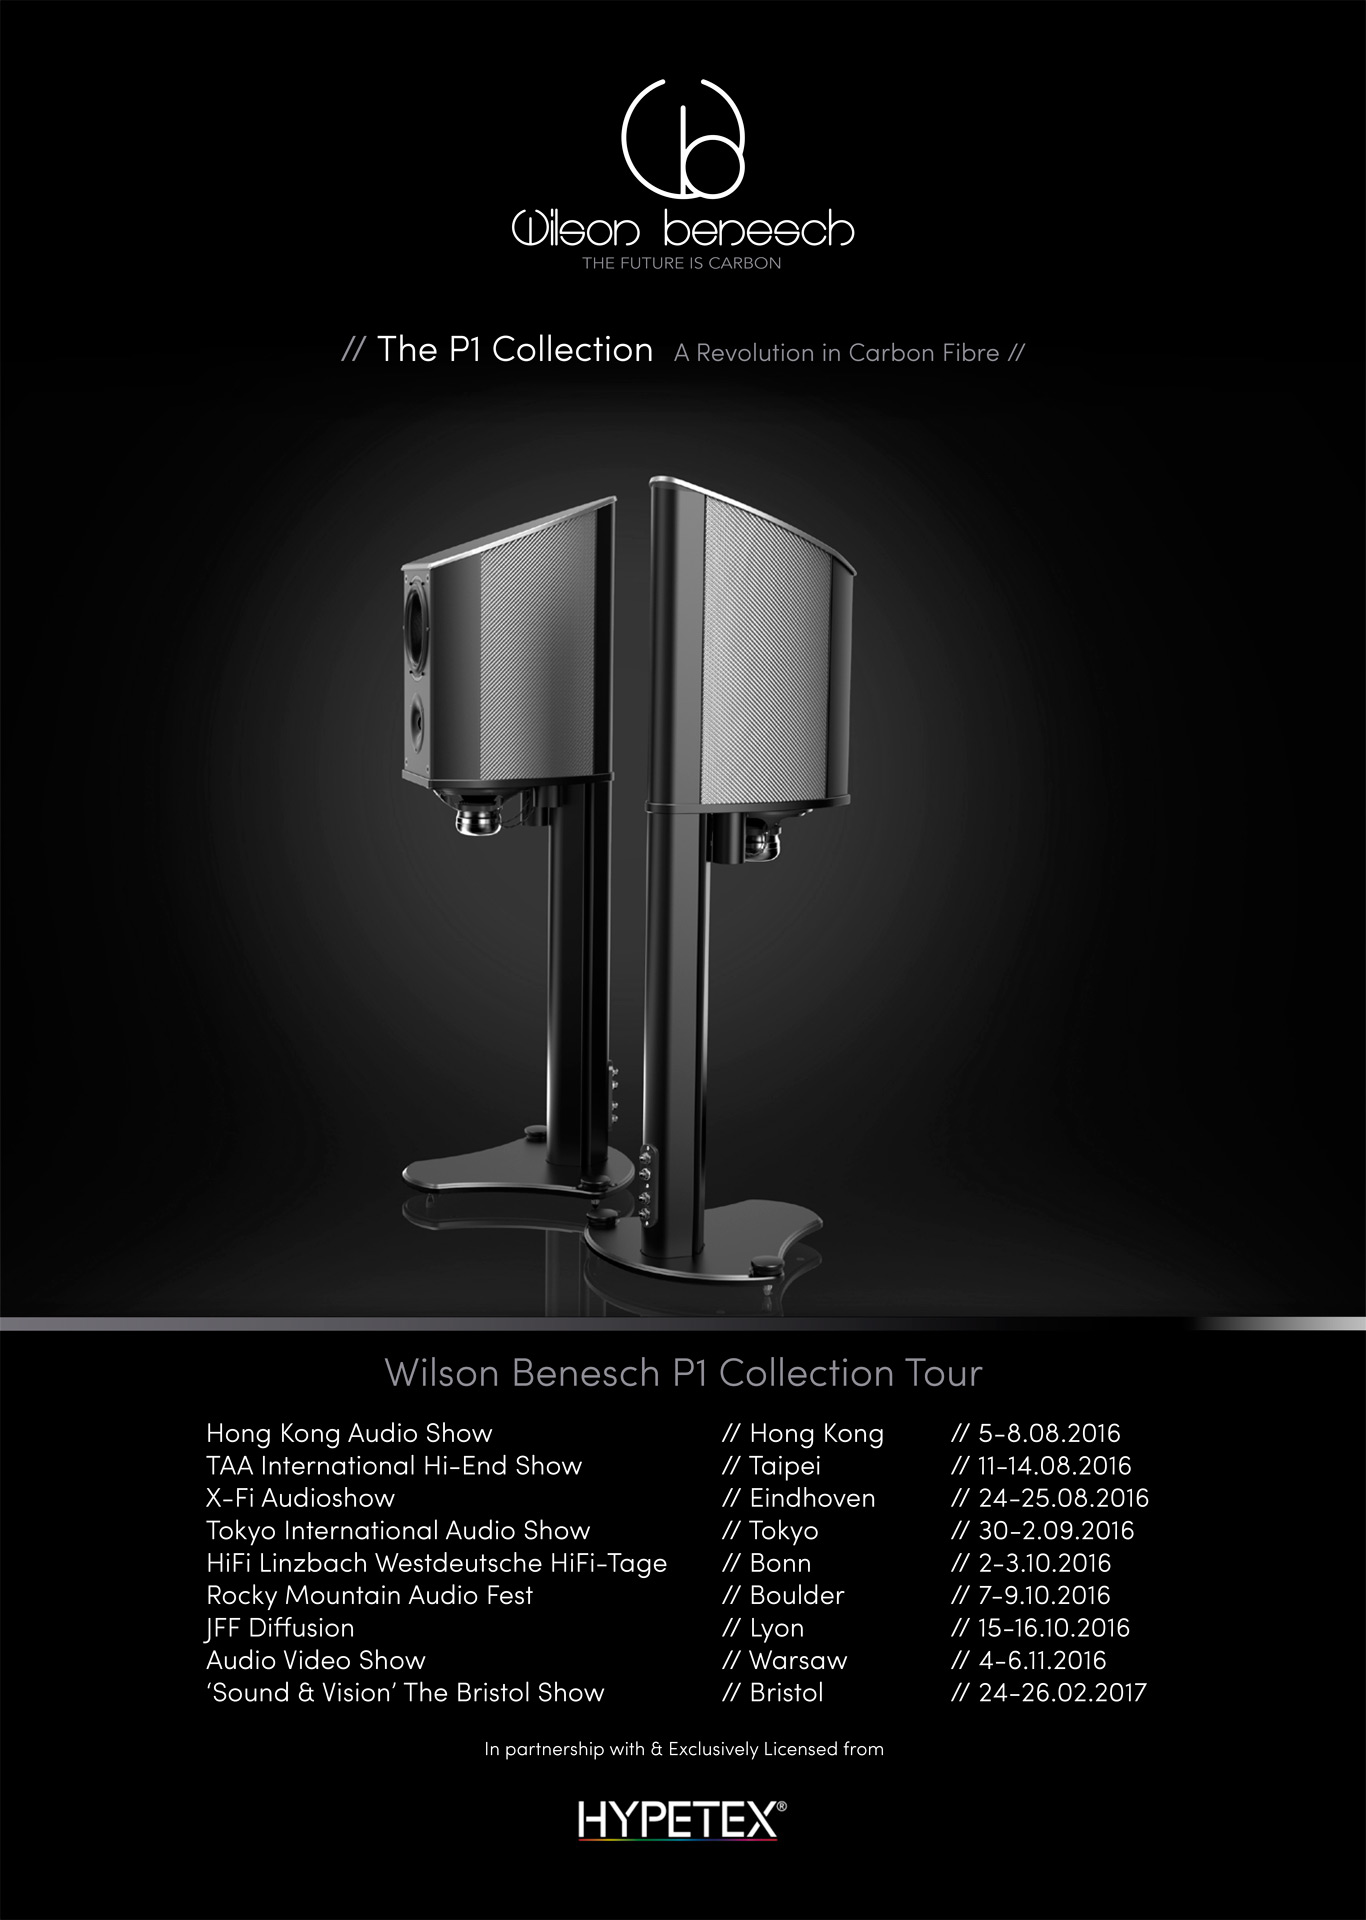 Geometry Series P1 Collection Tour Poster showing Discovery II P1 finished in Silverstone Silver Coloured Carbon Fibre